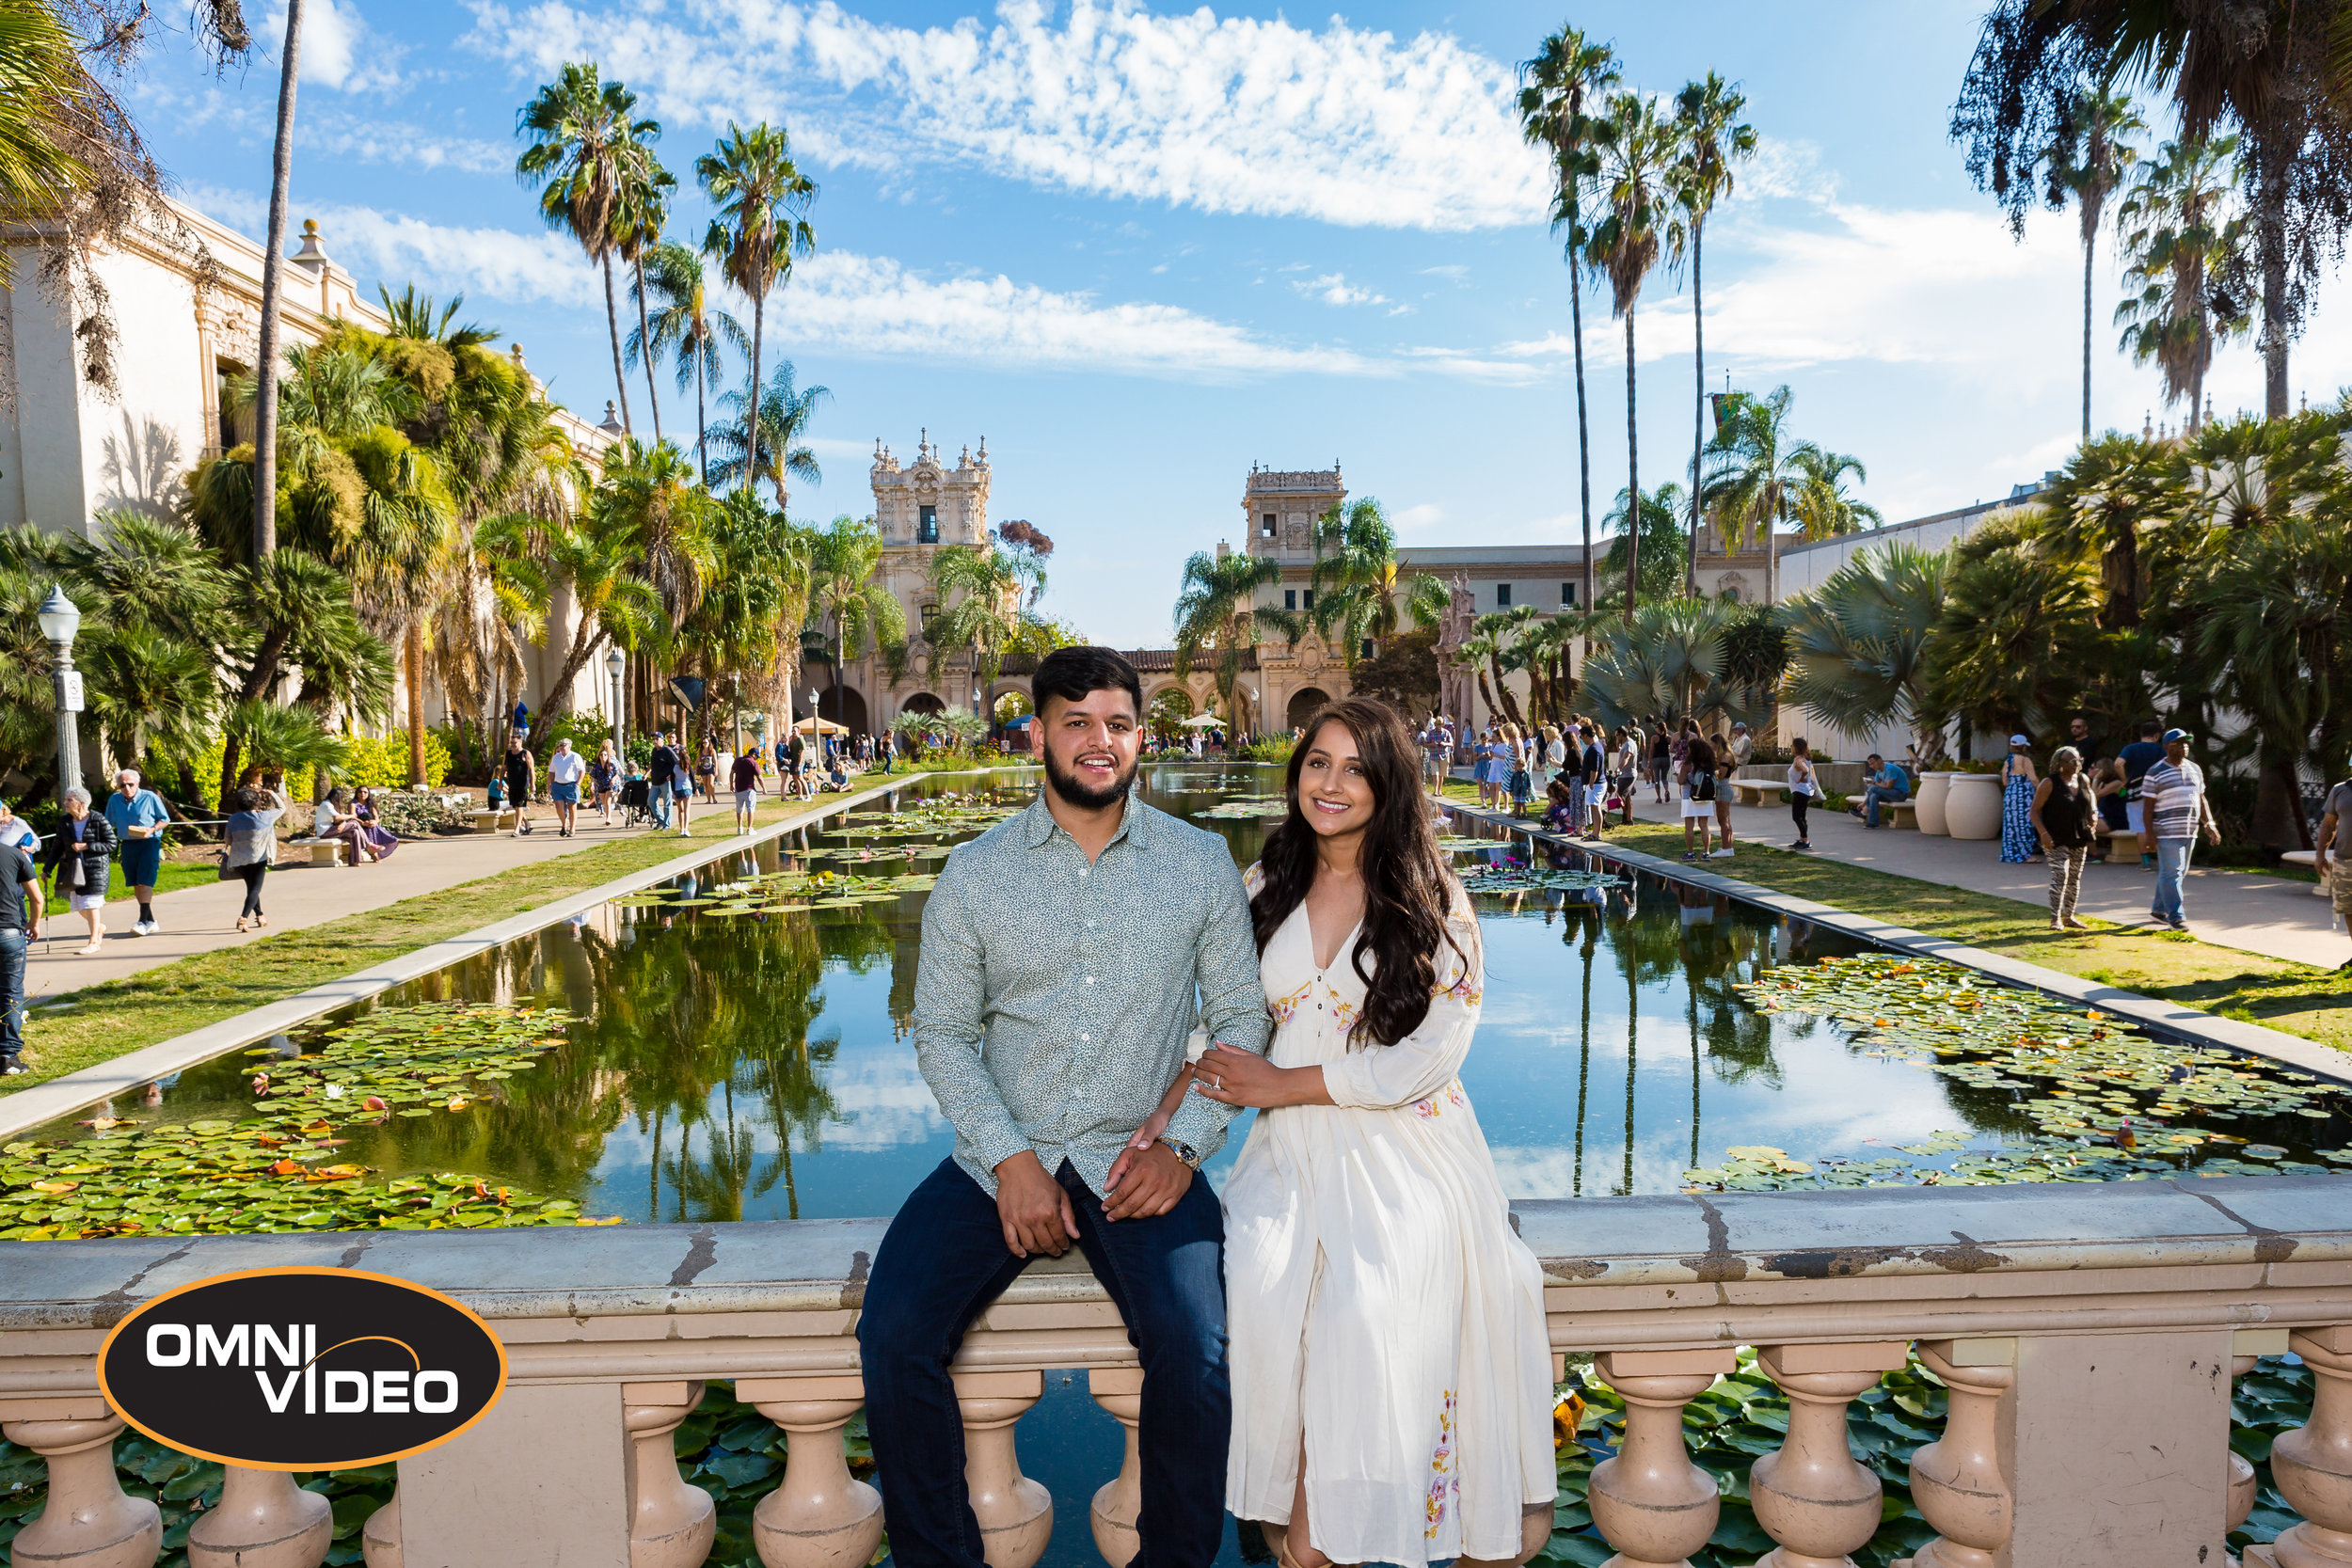 Yad & Raji - Balboa Park - Omni Video